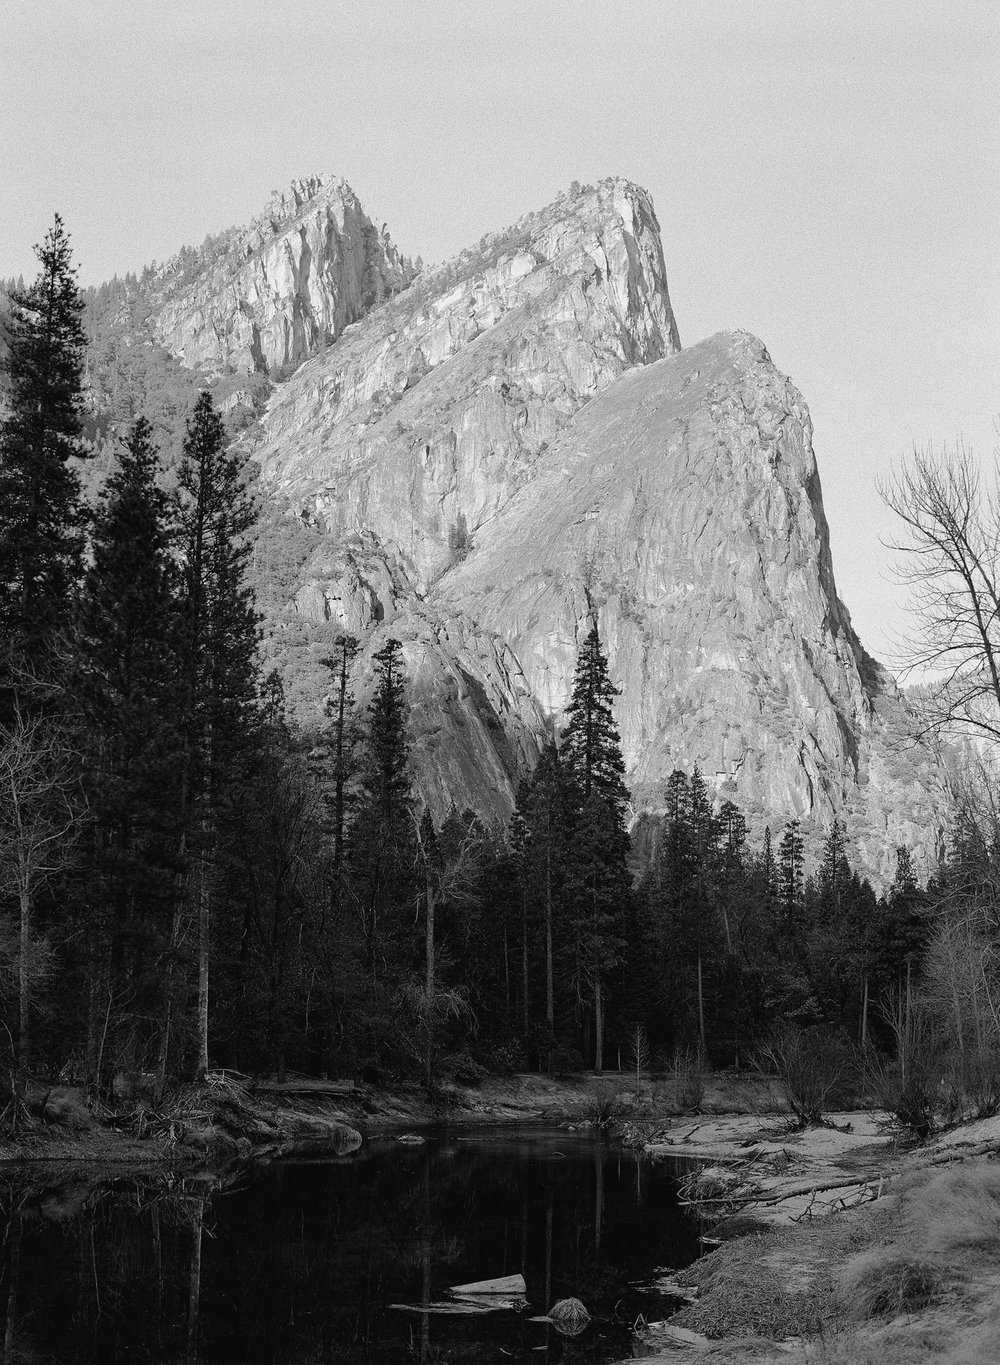 The Three Brothers, Yosemite Valley